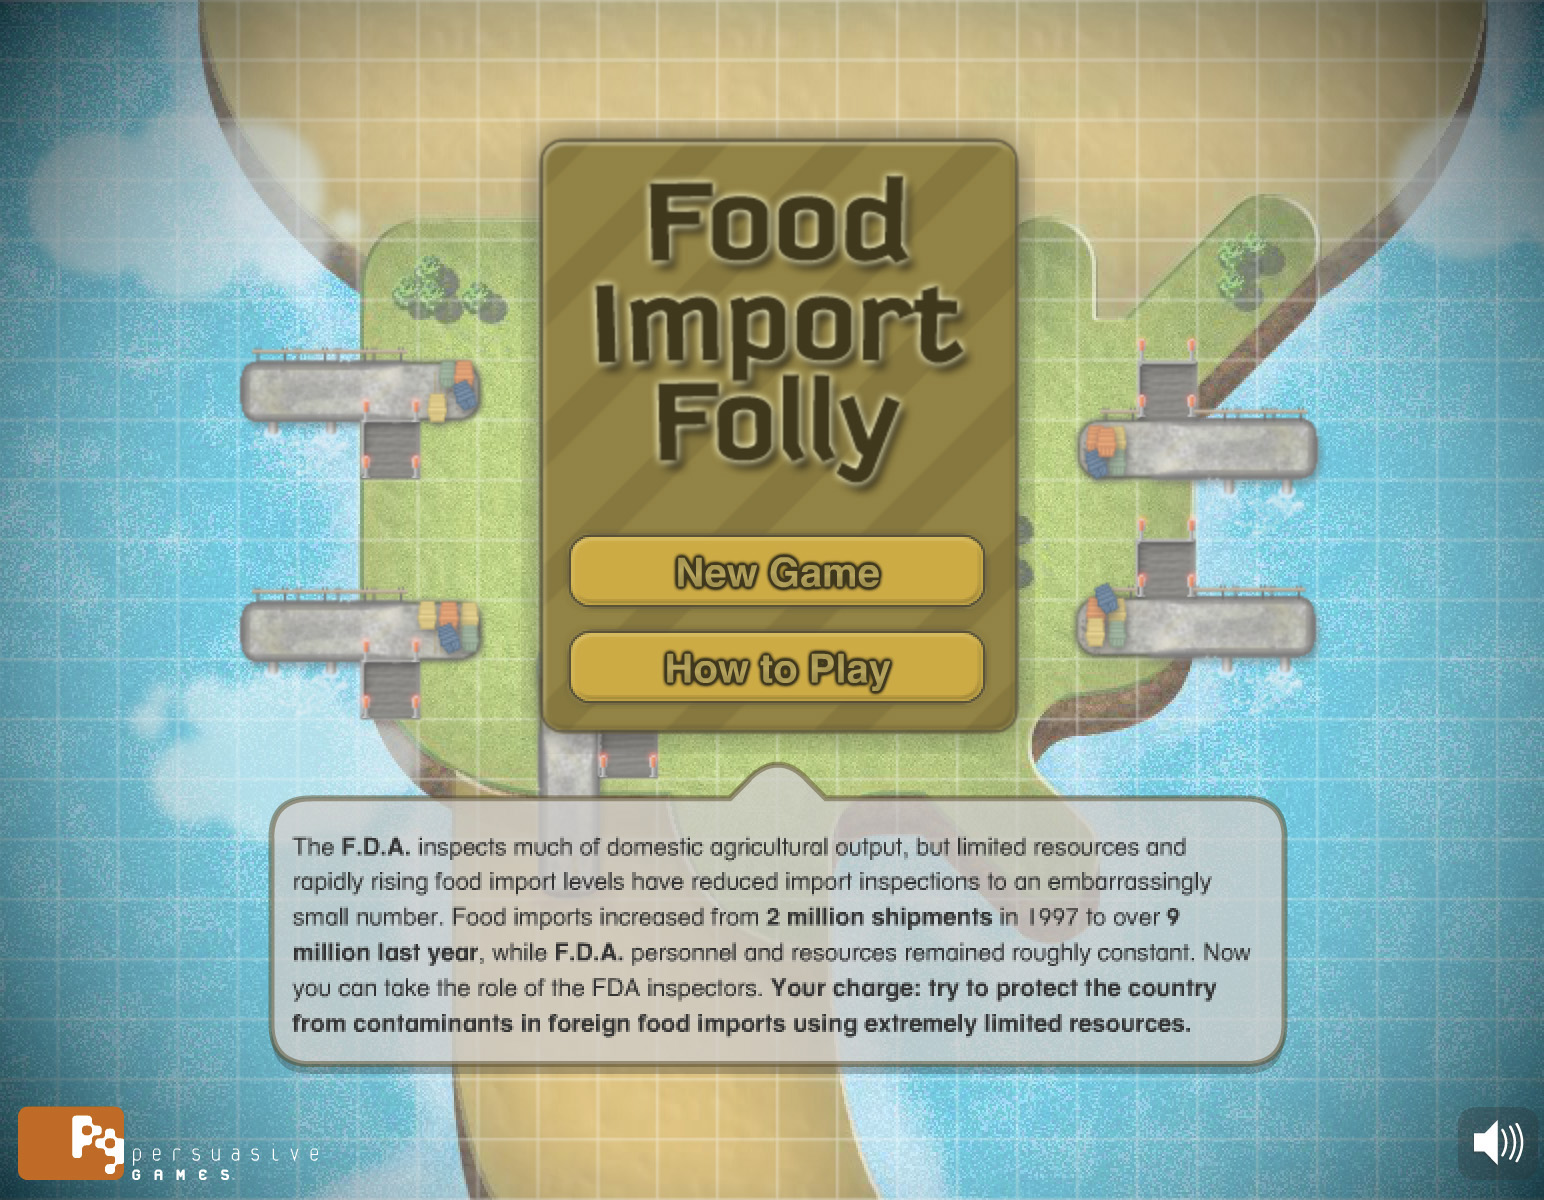 Try to protect the country from foreign contaminants in food imports using limited resources